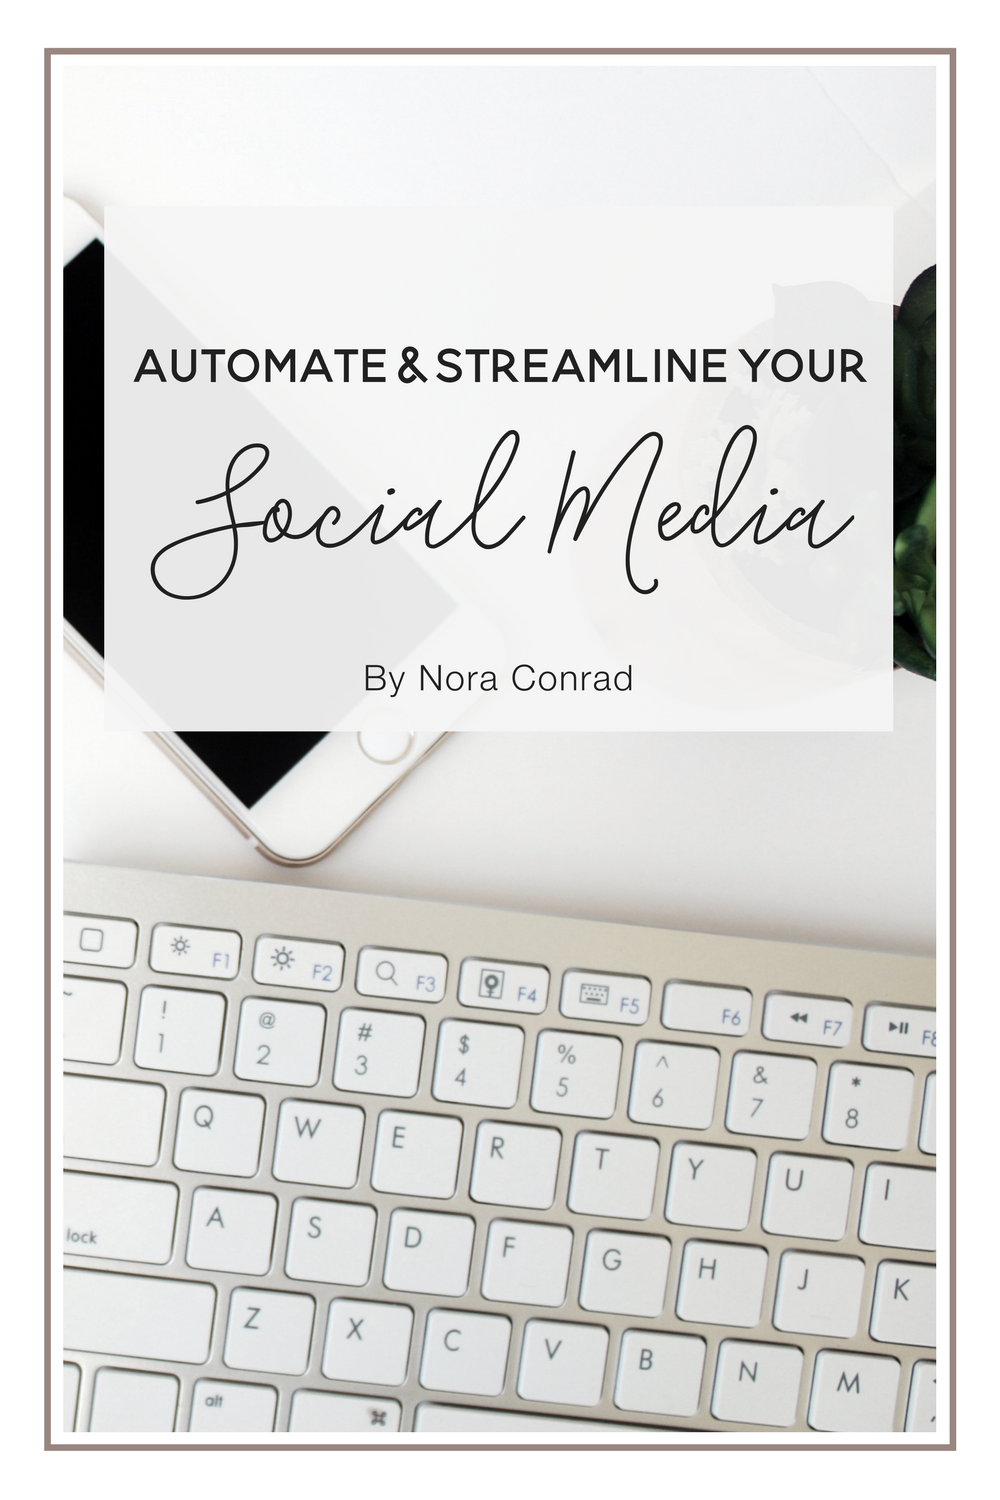 Using a couple fantastic tools, you can pre-schedule your social media and save hours every week. This guide and free resources will help you get started!